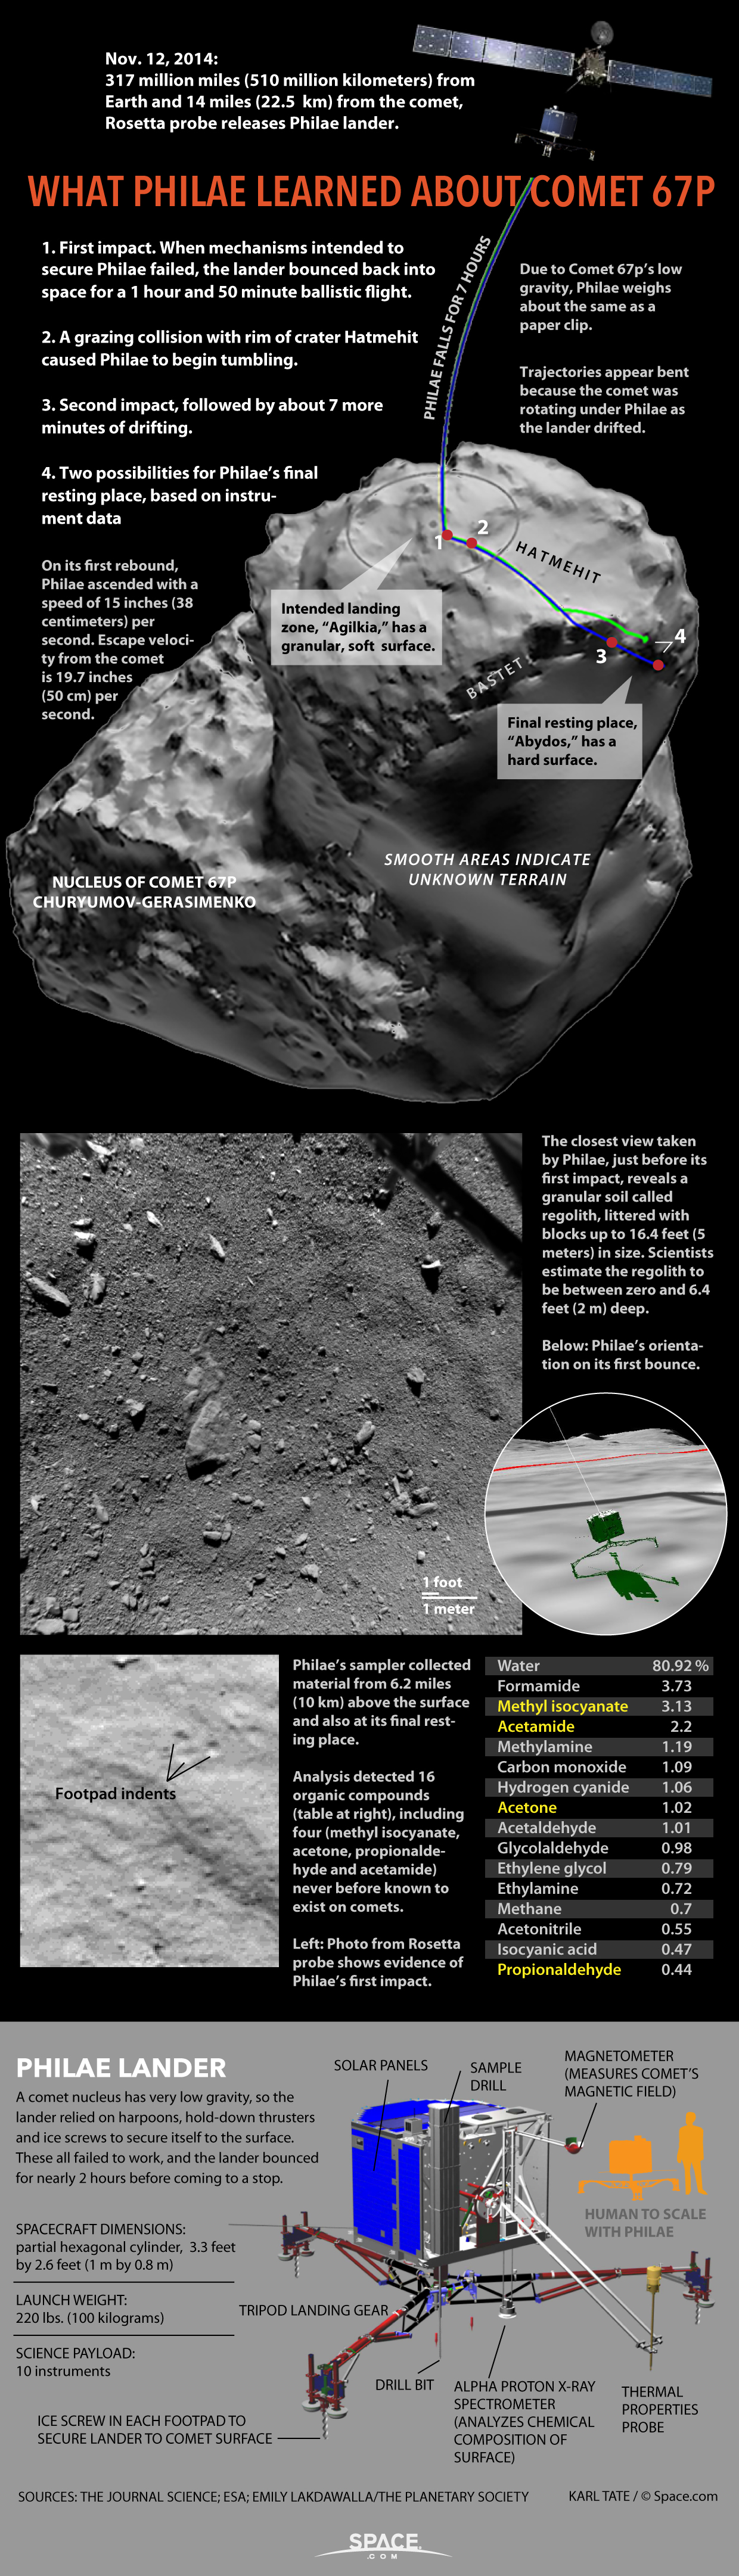 Philae Comet Landing: Big Discoveries About Comet 67P (Infographic)